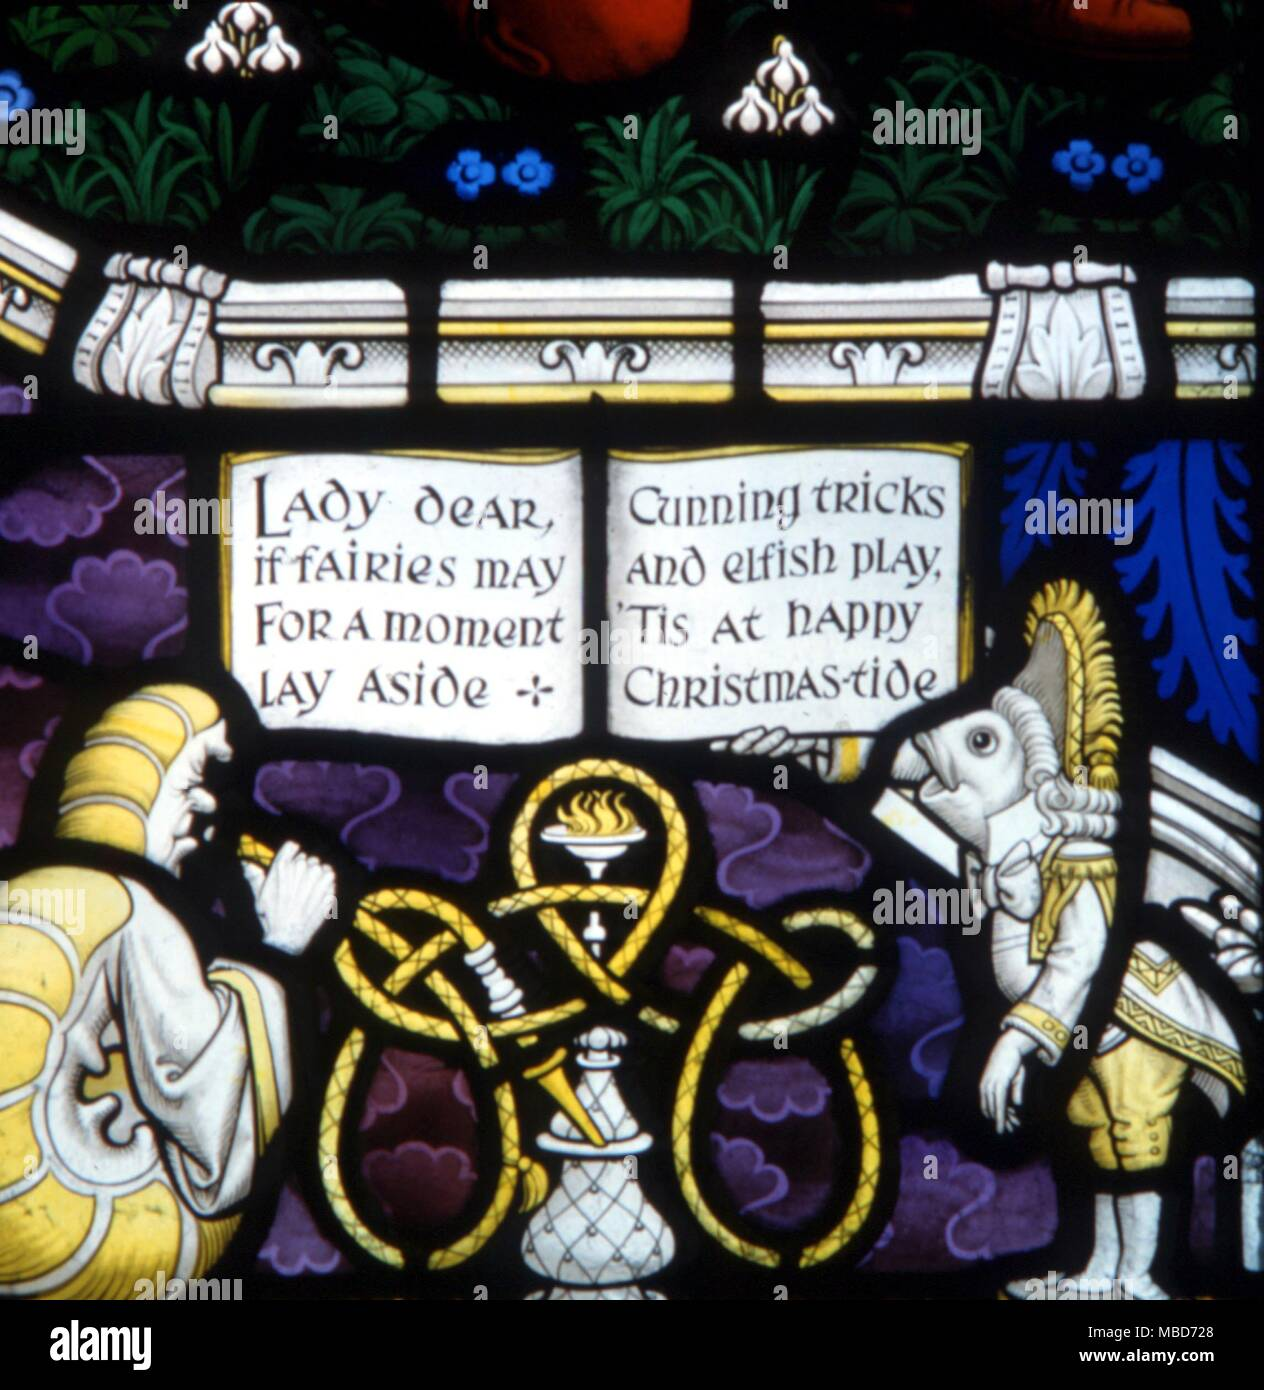 Myths - Daresbury - The Lewis Carroll memorial window at Daresbury Parish Church was designed by Geoffrey Webb, and dedicated in 1934.  Caterpillar smoking his pipe - Lady dear if fairies may for a moment lay aside cunning tricks and elfish play 'tis at happy Christmas-tide - Stock Image